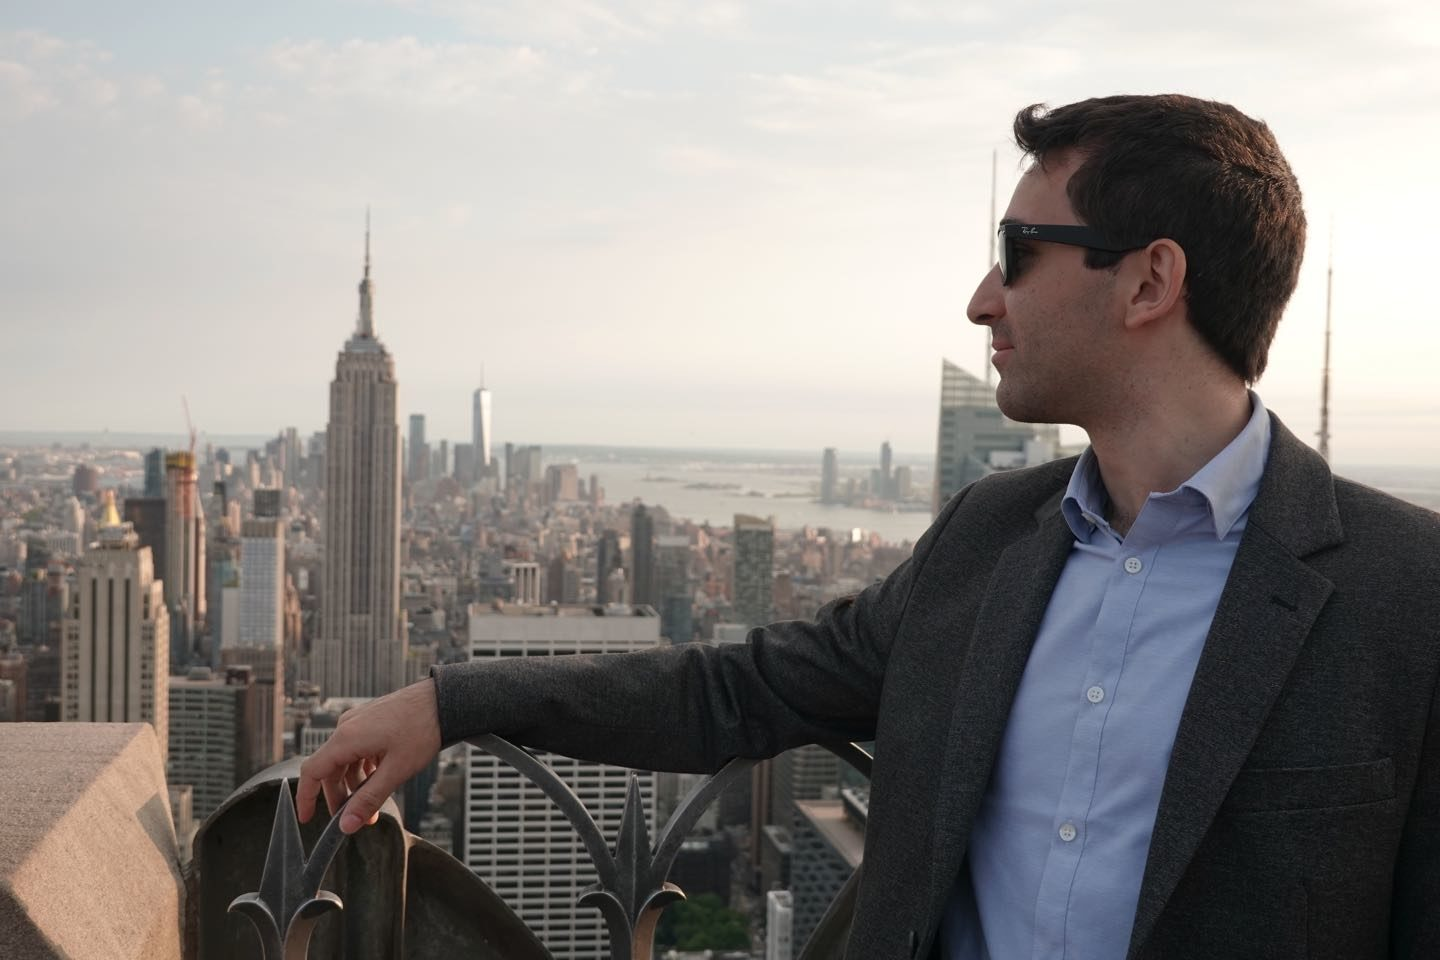 Portrait with the Empire State on the background.